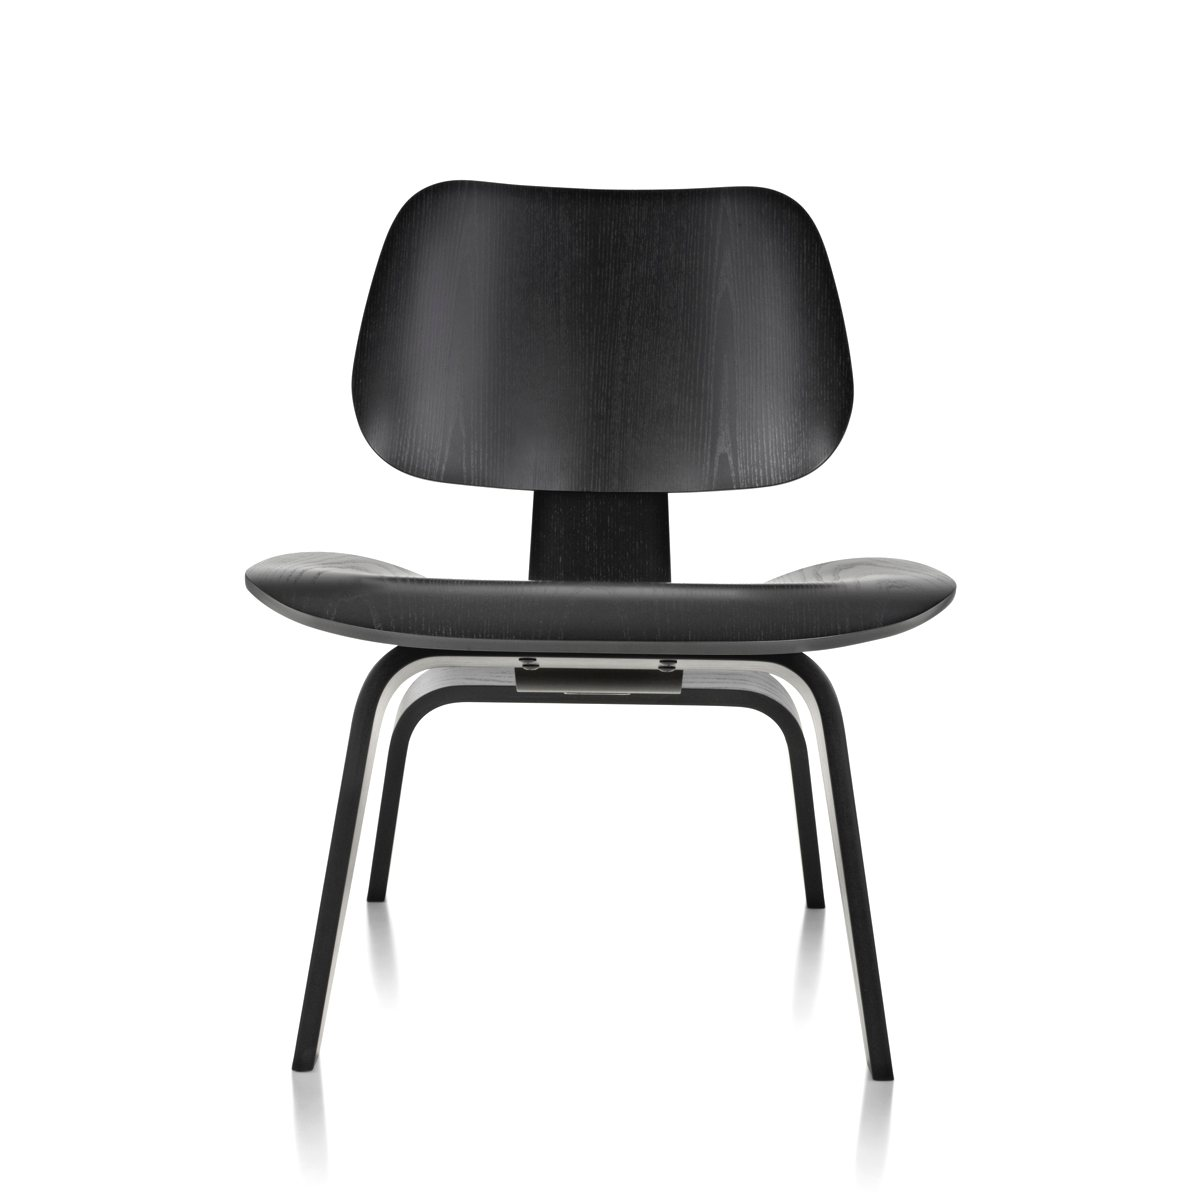 Eames molded plywood lounge chair wood base by charles ray for Charles eames lounge chair nachbildung